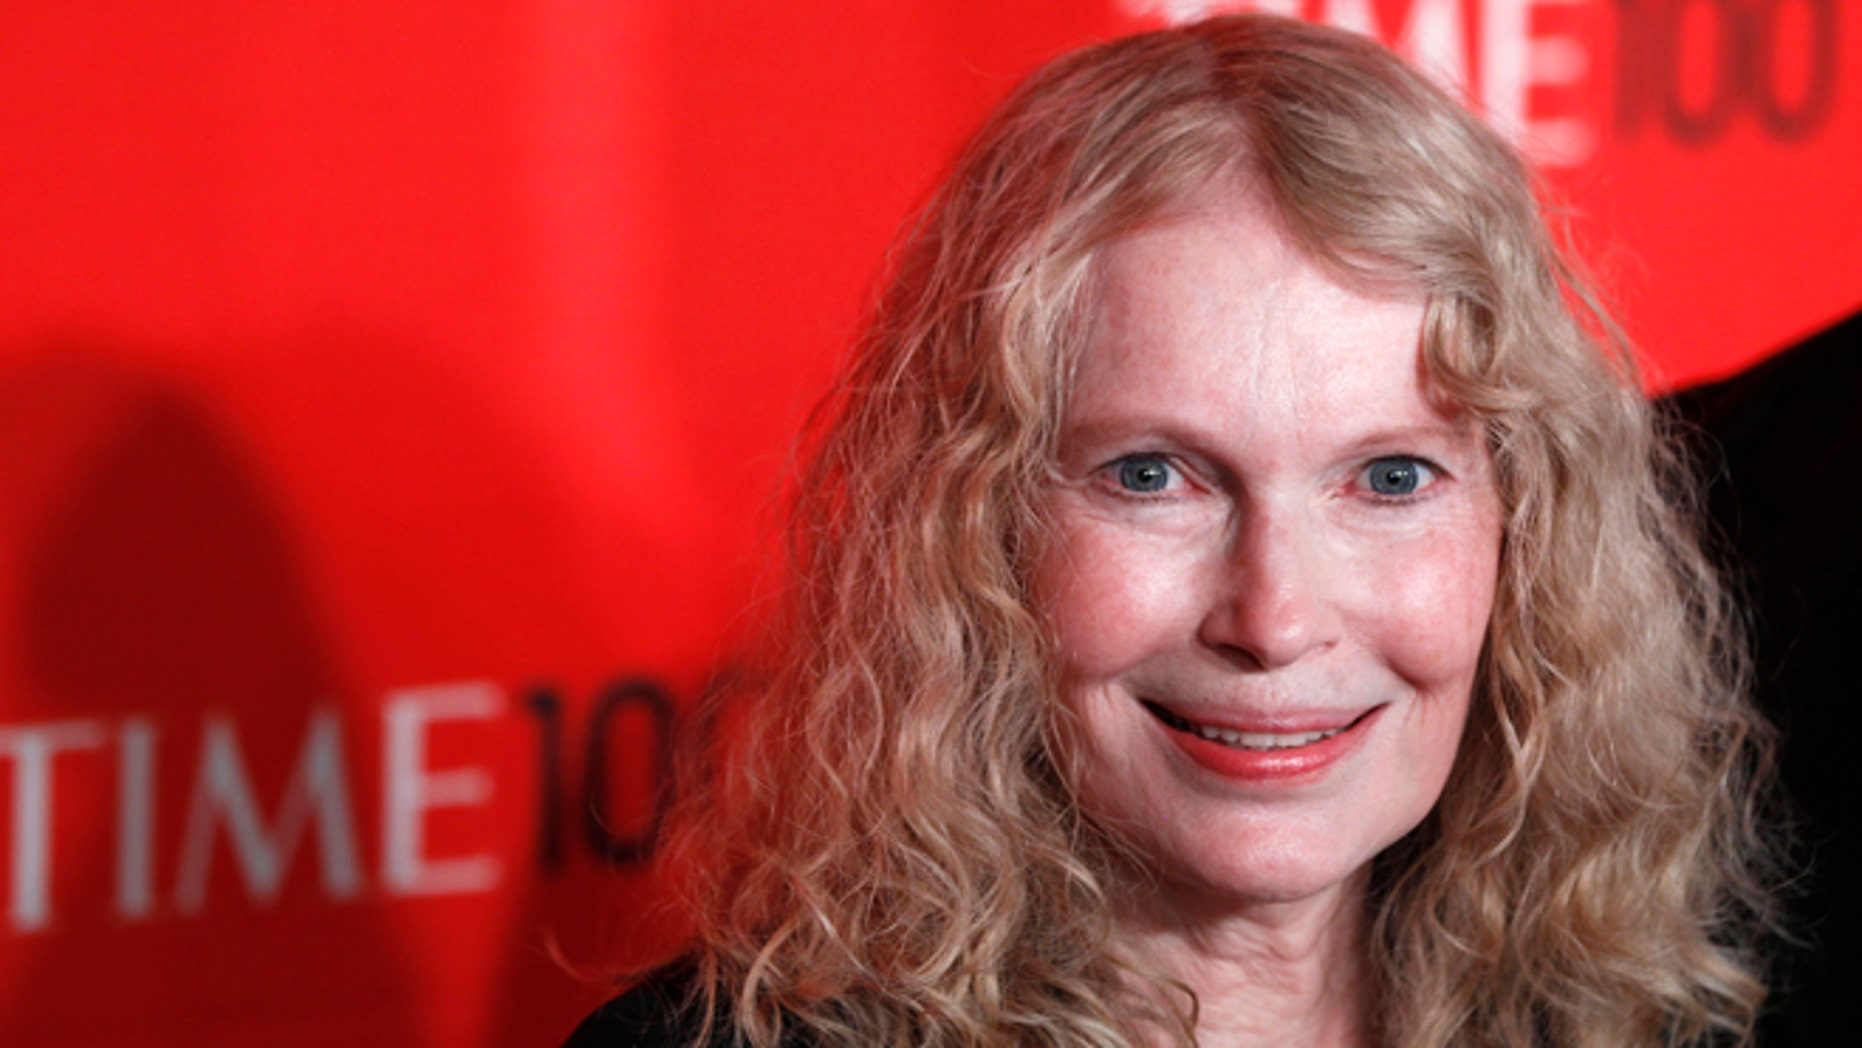 April 24, 2012: Actress Mia Farrow arrives at the Time 100 Gala in New York.